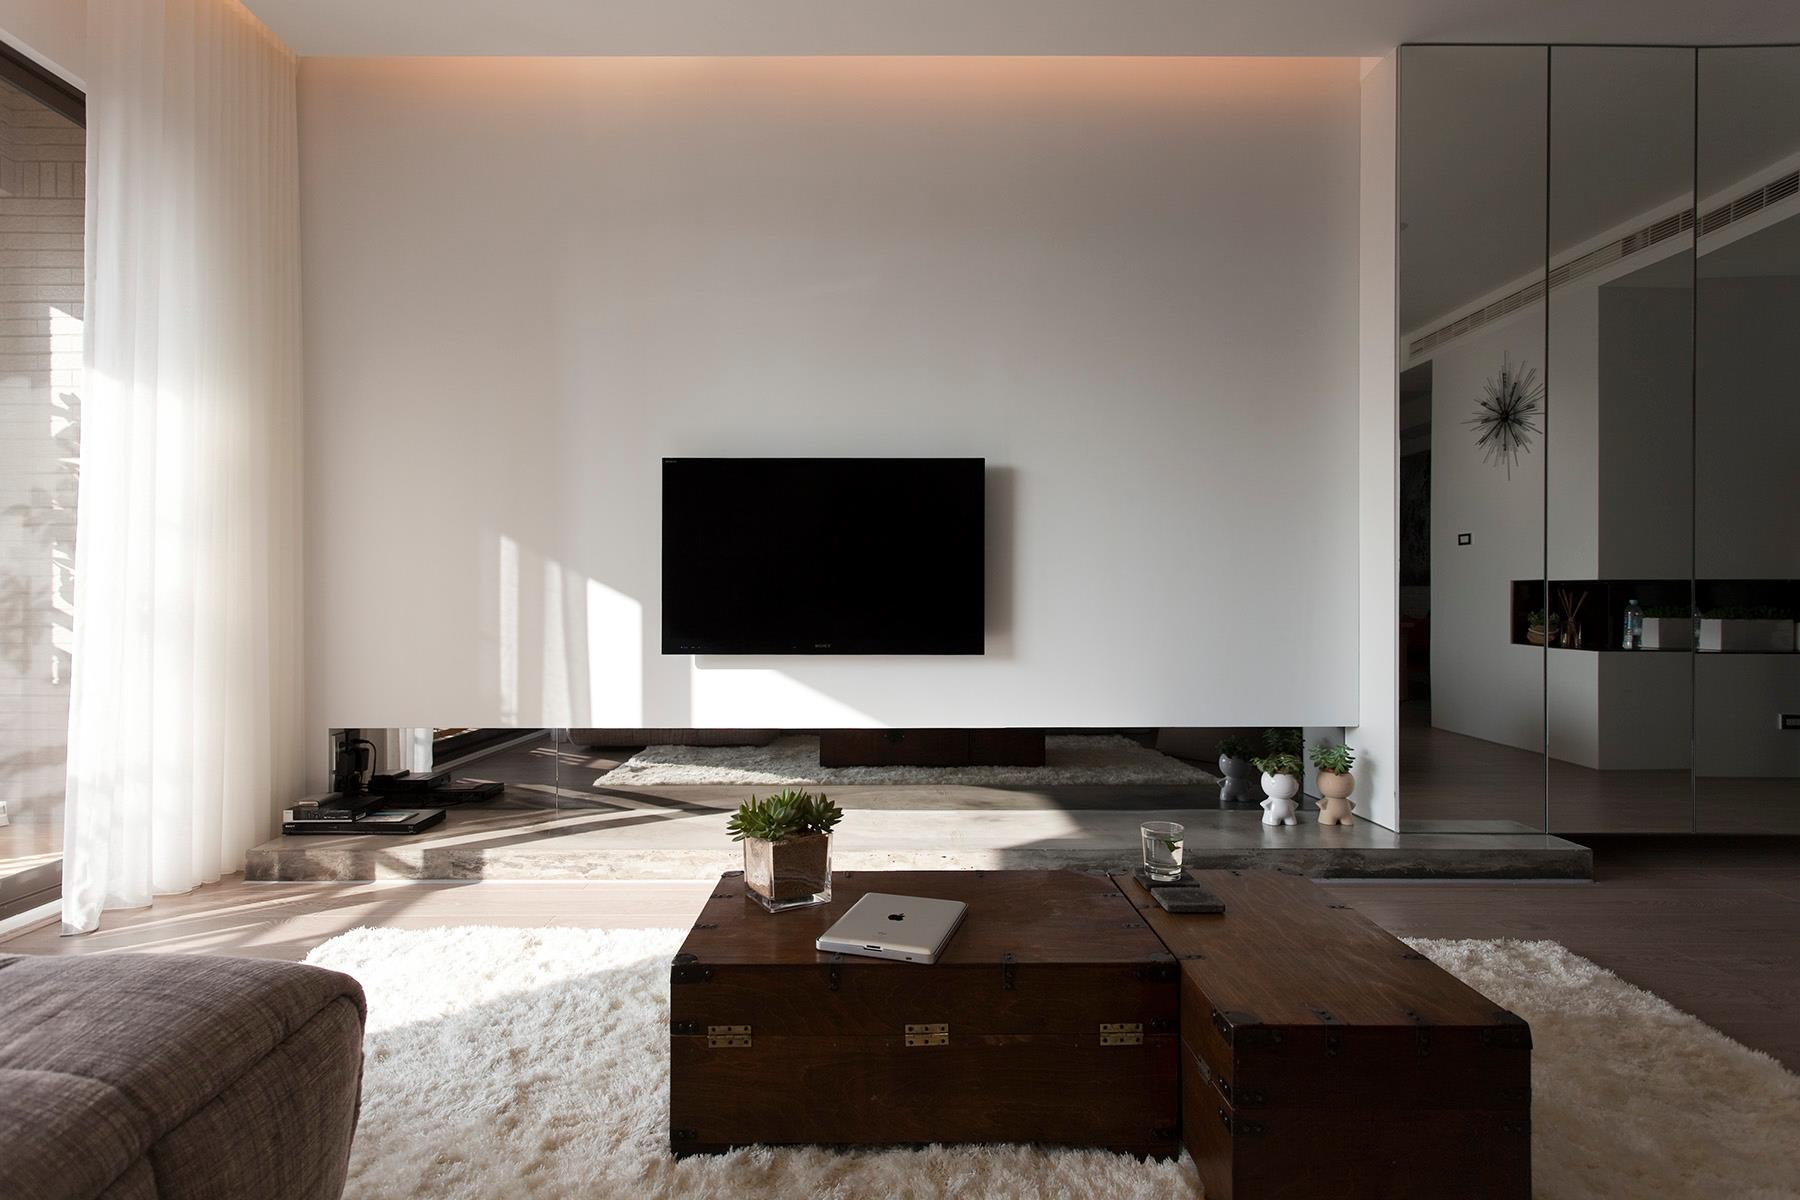 Modern living room jan 05 2013 19 52 46 picture gallery - Interior design living room modern ...